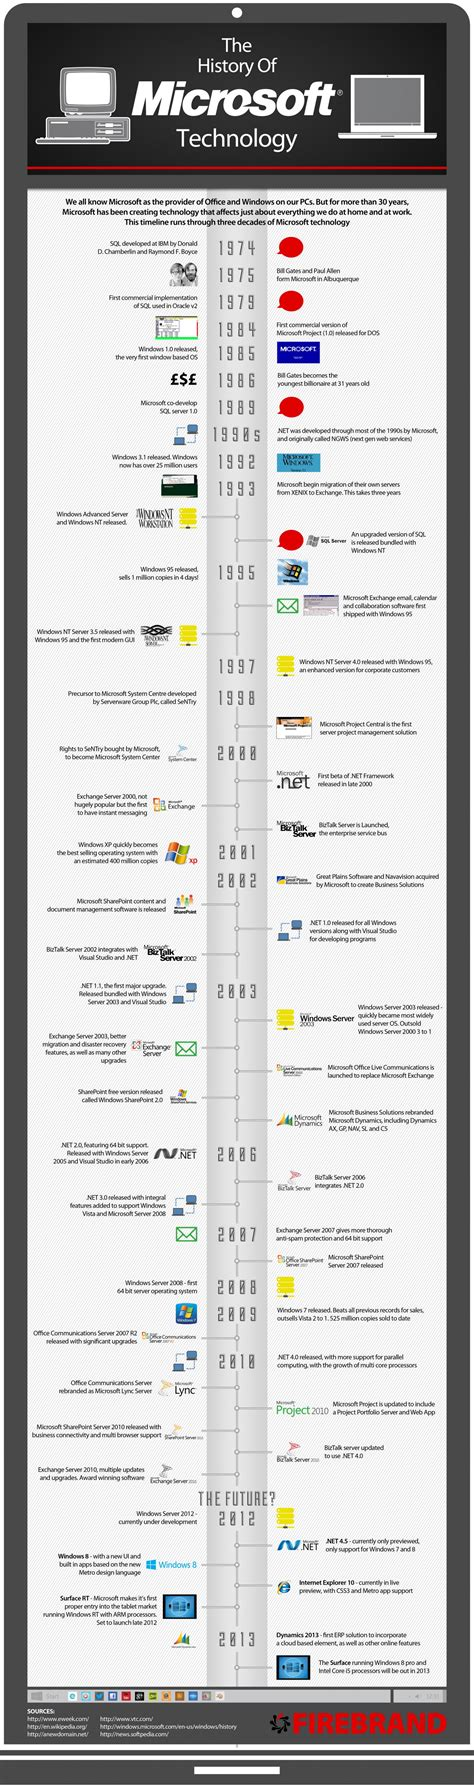 Email History Search The History Of Microsoft Technology Infographic